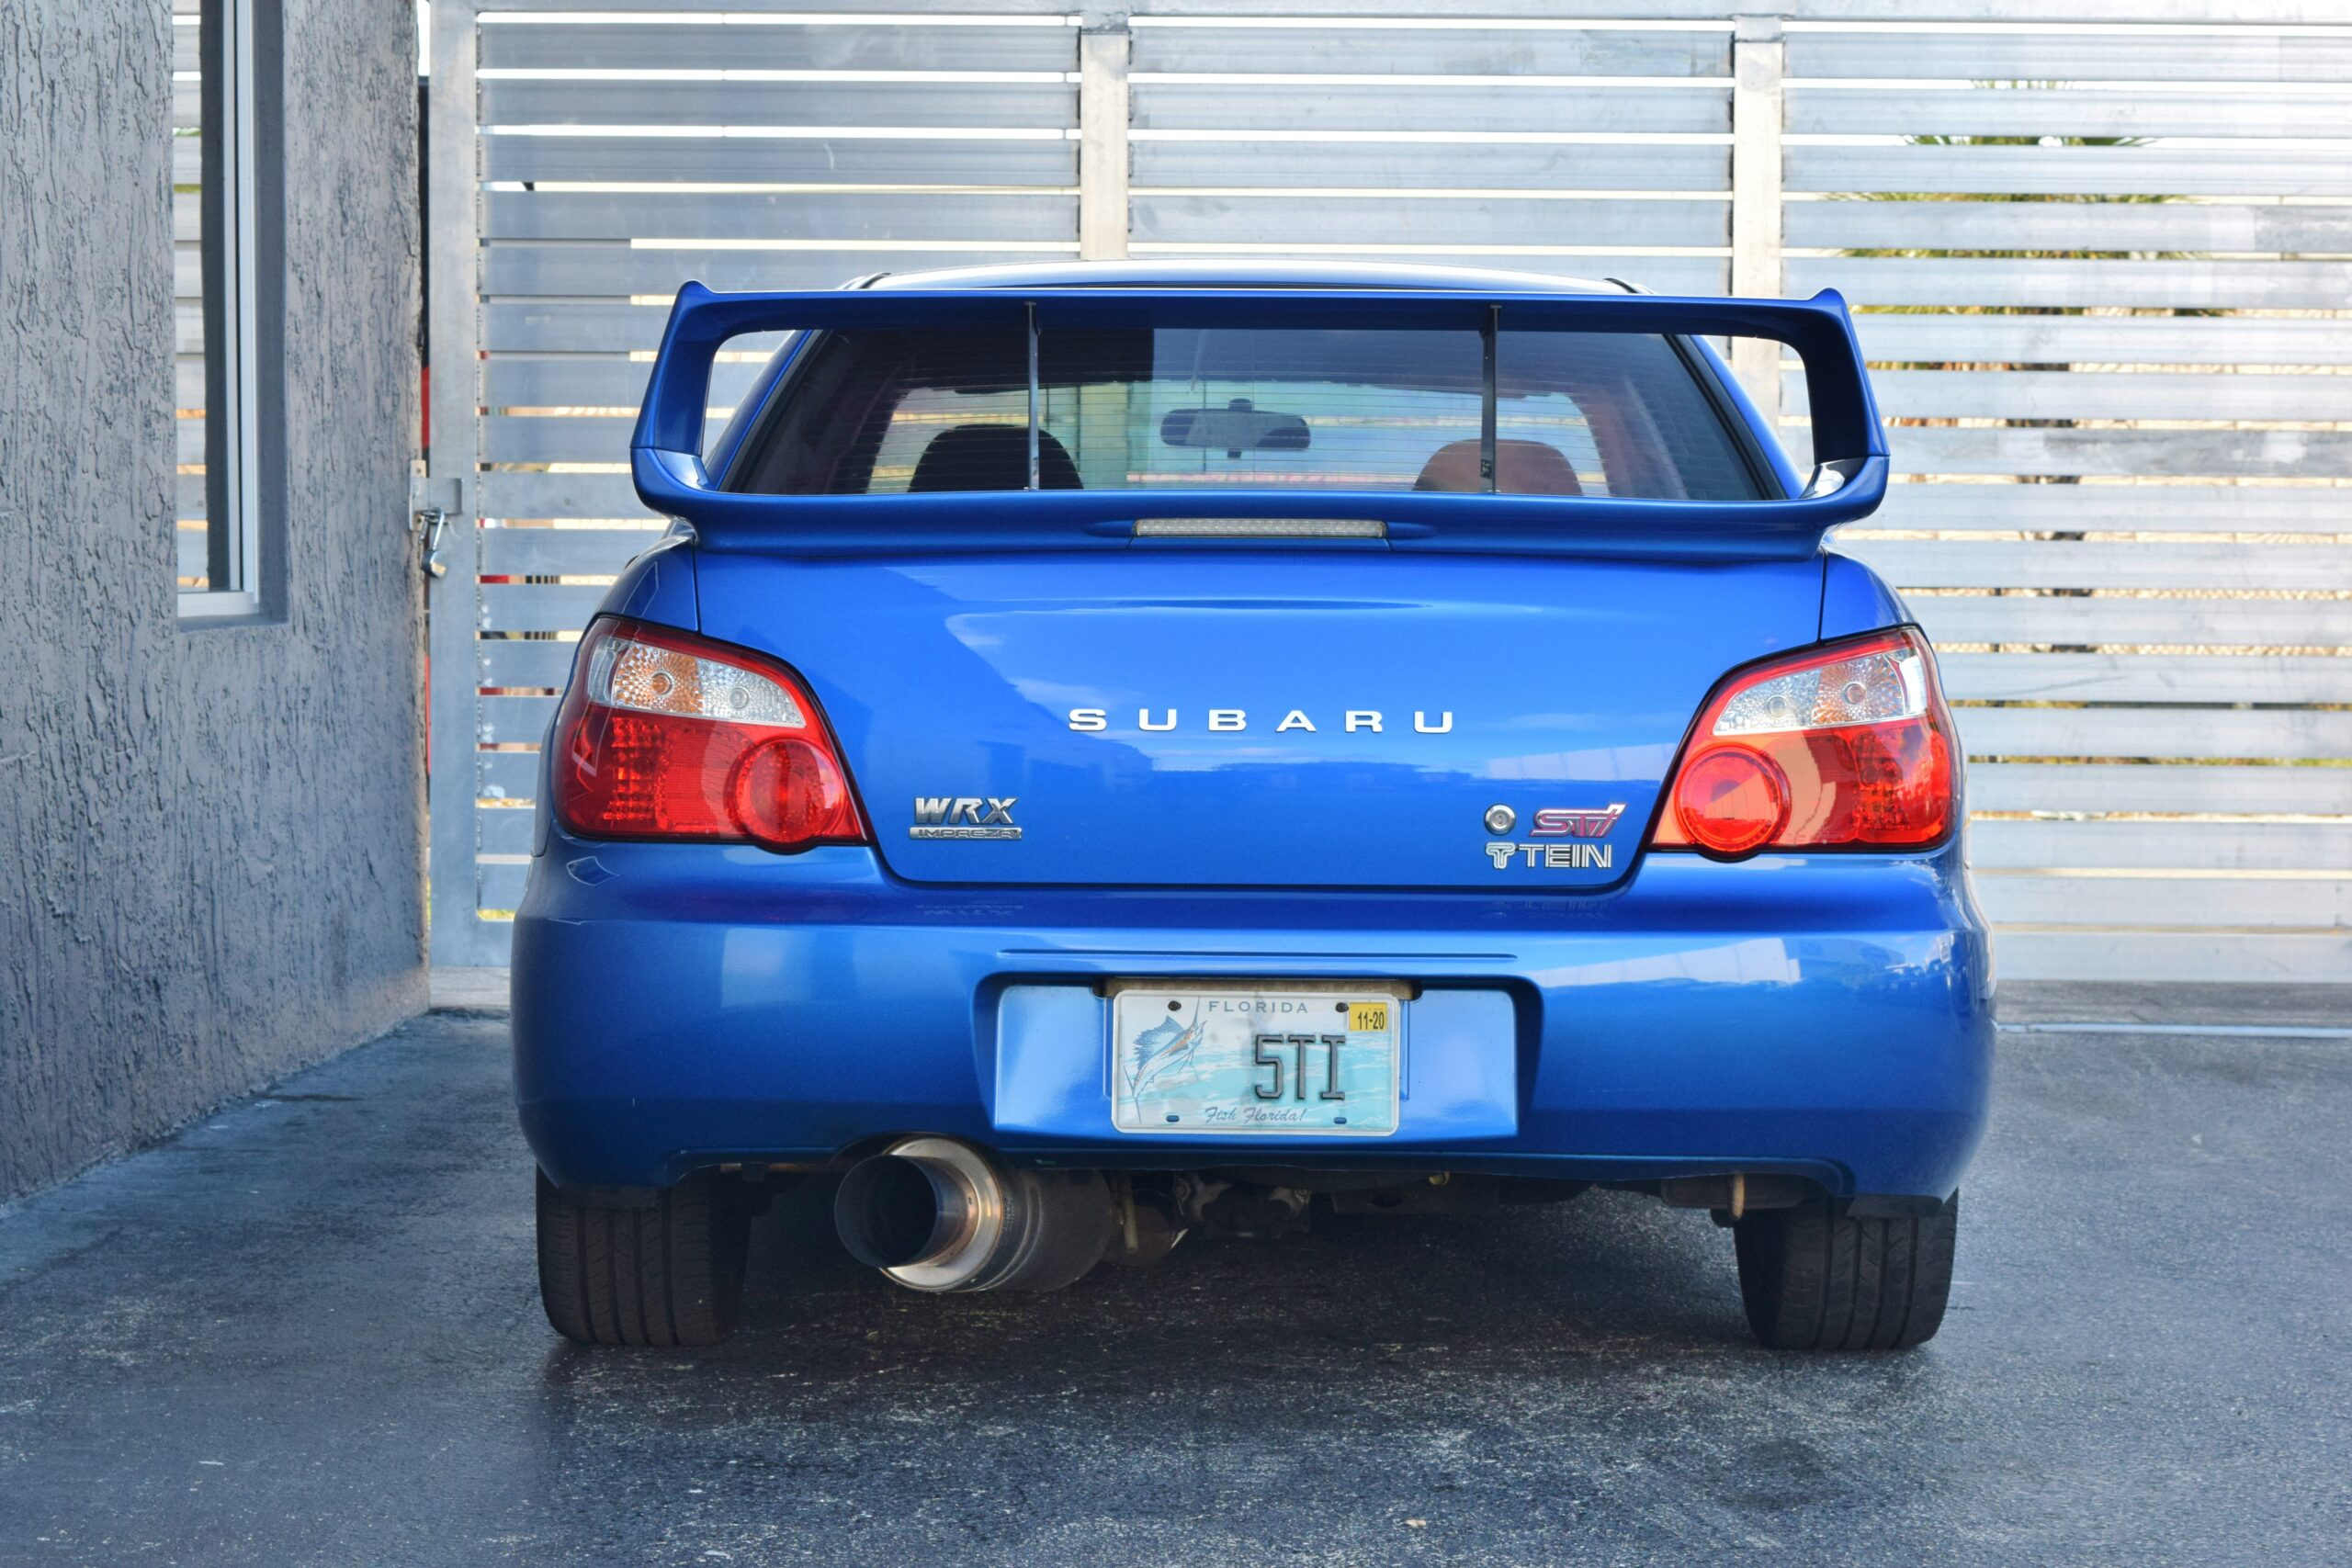 2004 Subaru WRX STI 1 Owner – Original Paint – Only 24K Miles – Built Motor – New Clutch – FAST!